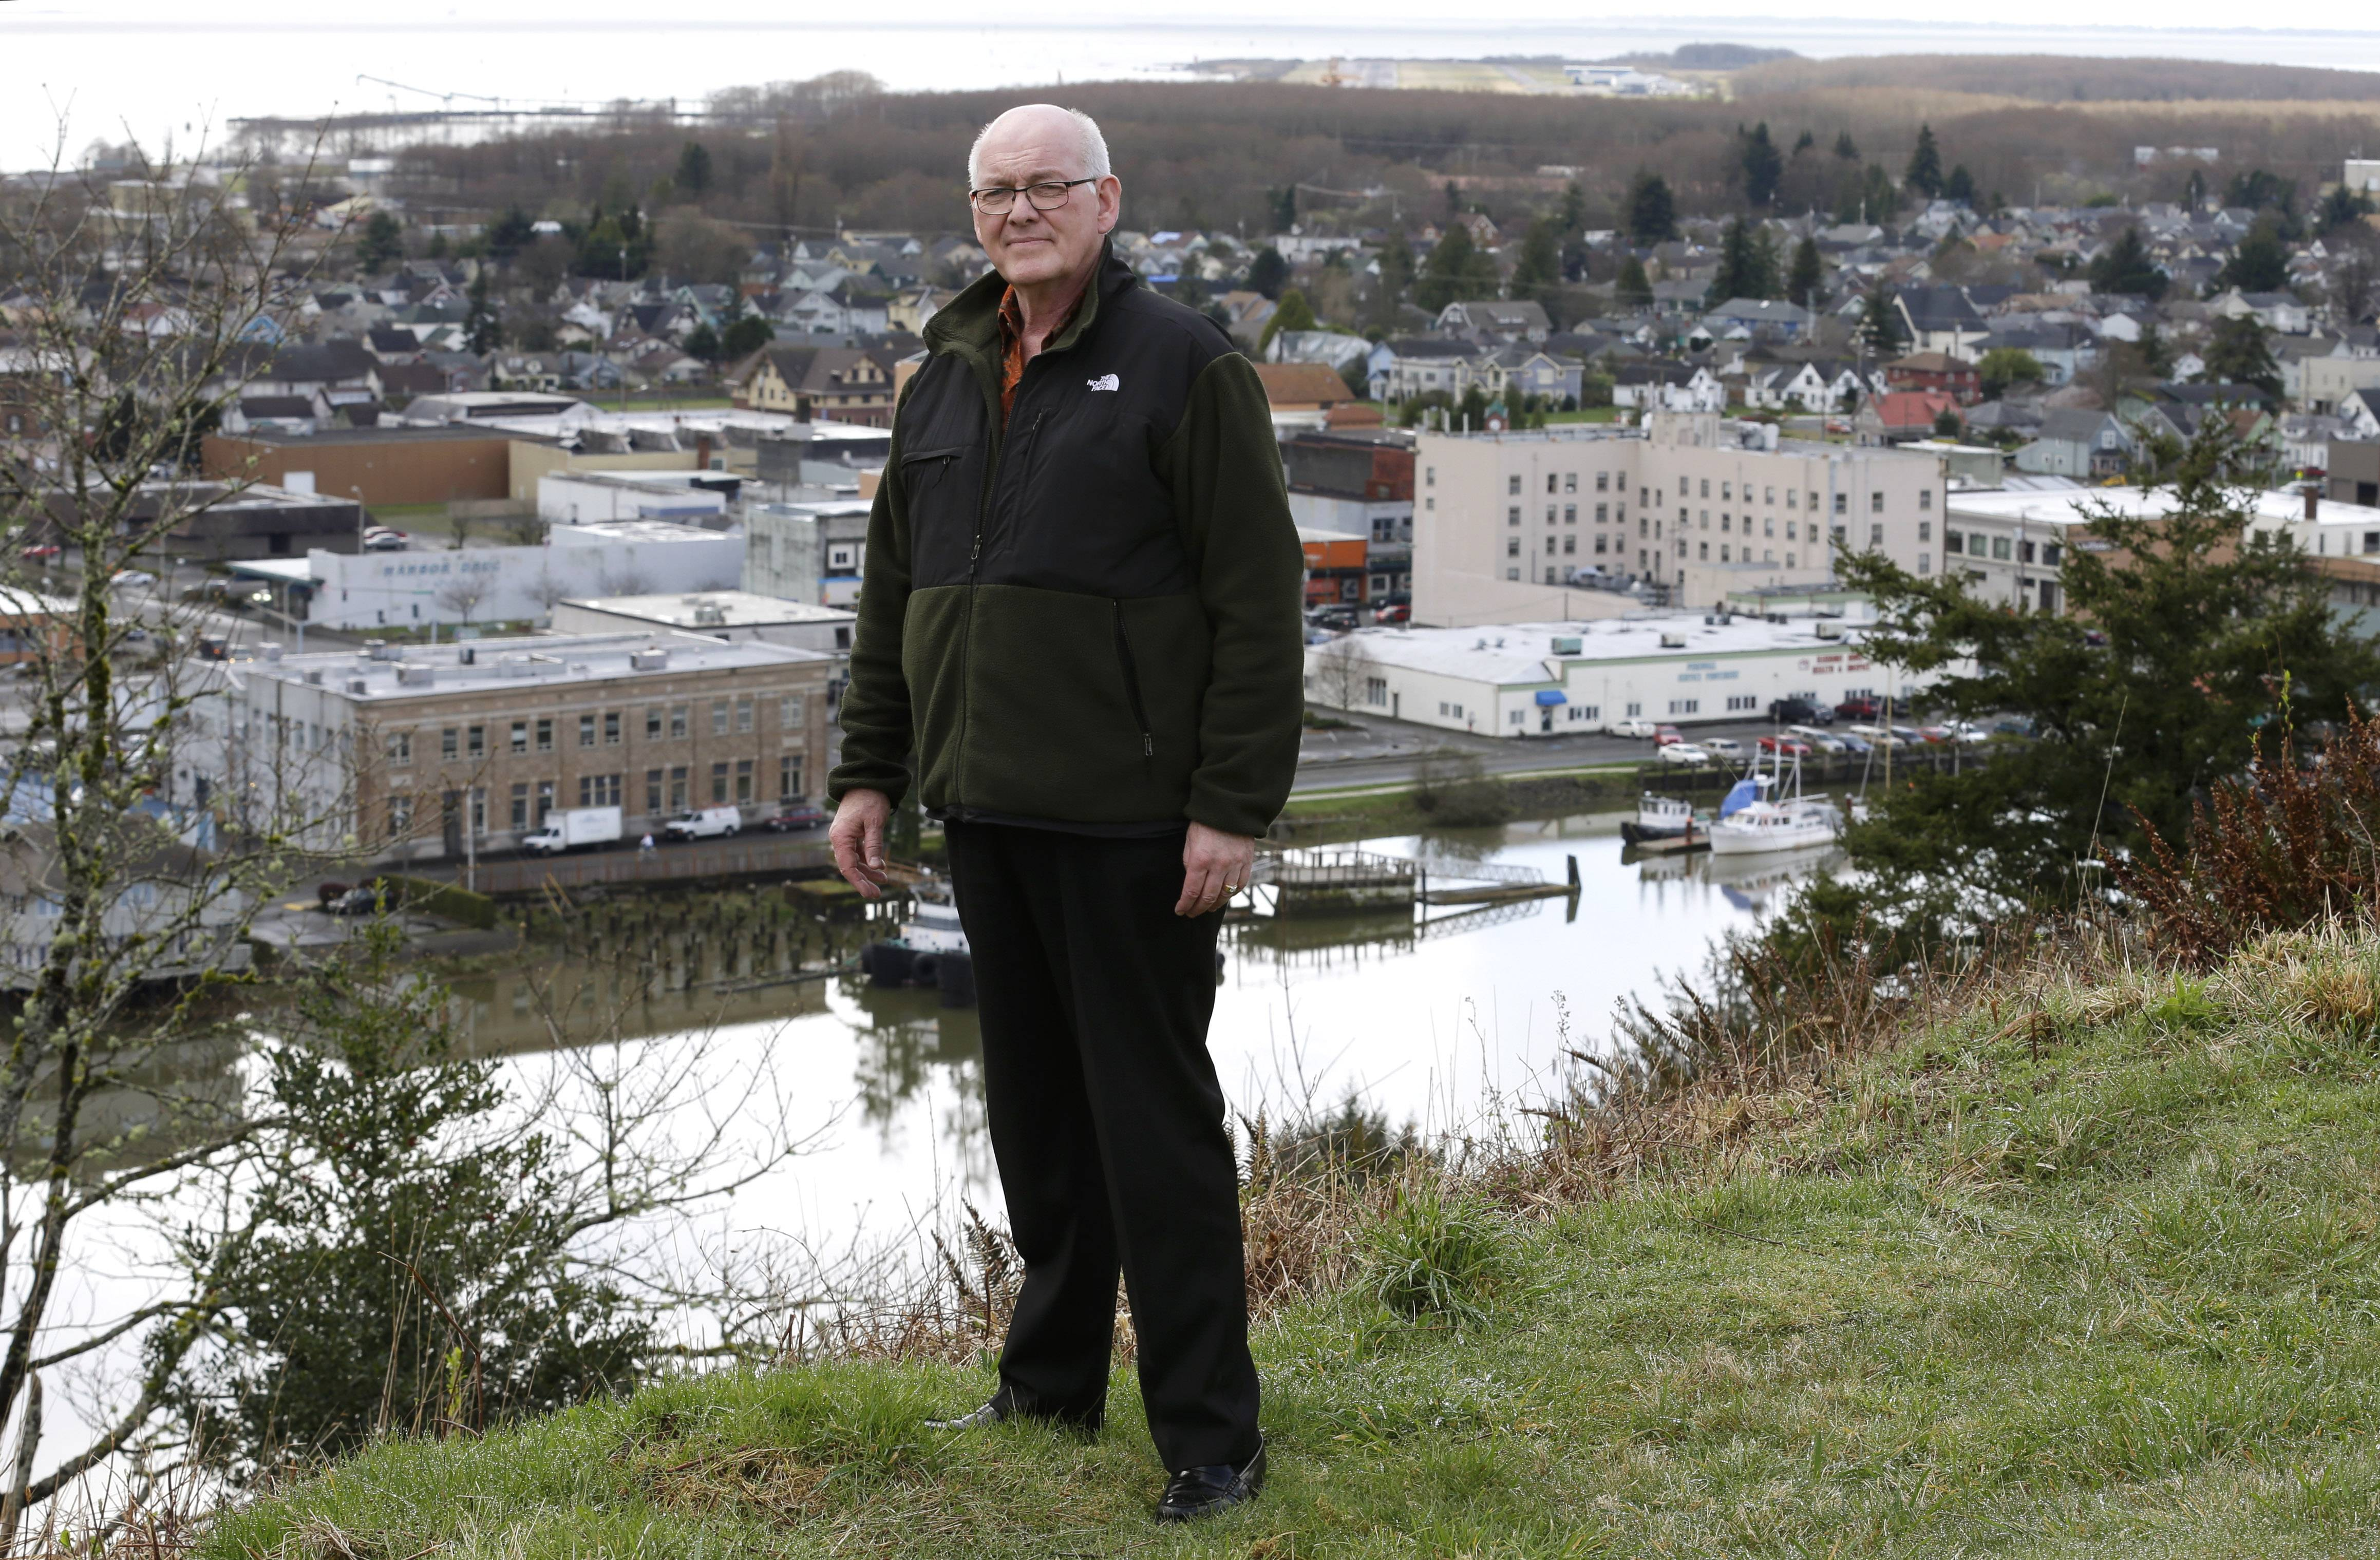 Jack Durney, mayor of Hoquiam, Wash., stands on a hill on Monday overlooking his city, the Hoquiam River, and Grays Harbor. Because most of Hoquiam lies in the flood plain, Durney says possible increases in federal flood insurance rates would adversely affect many who live in his town. In the old logging port on an estuarine bay, the great majority of the 8,700 residents live in a flood hazard area.